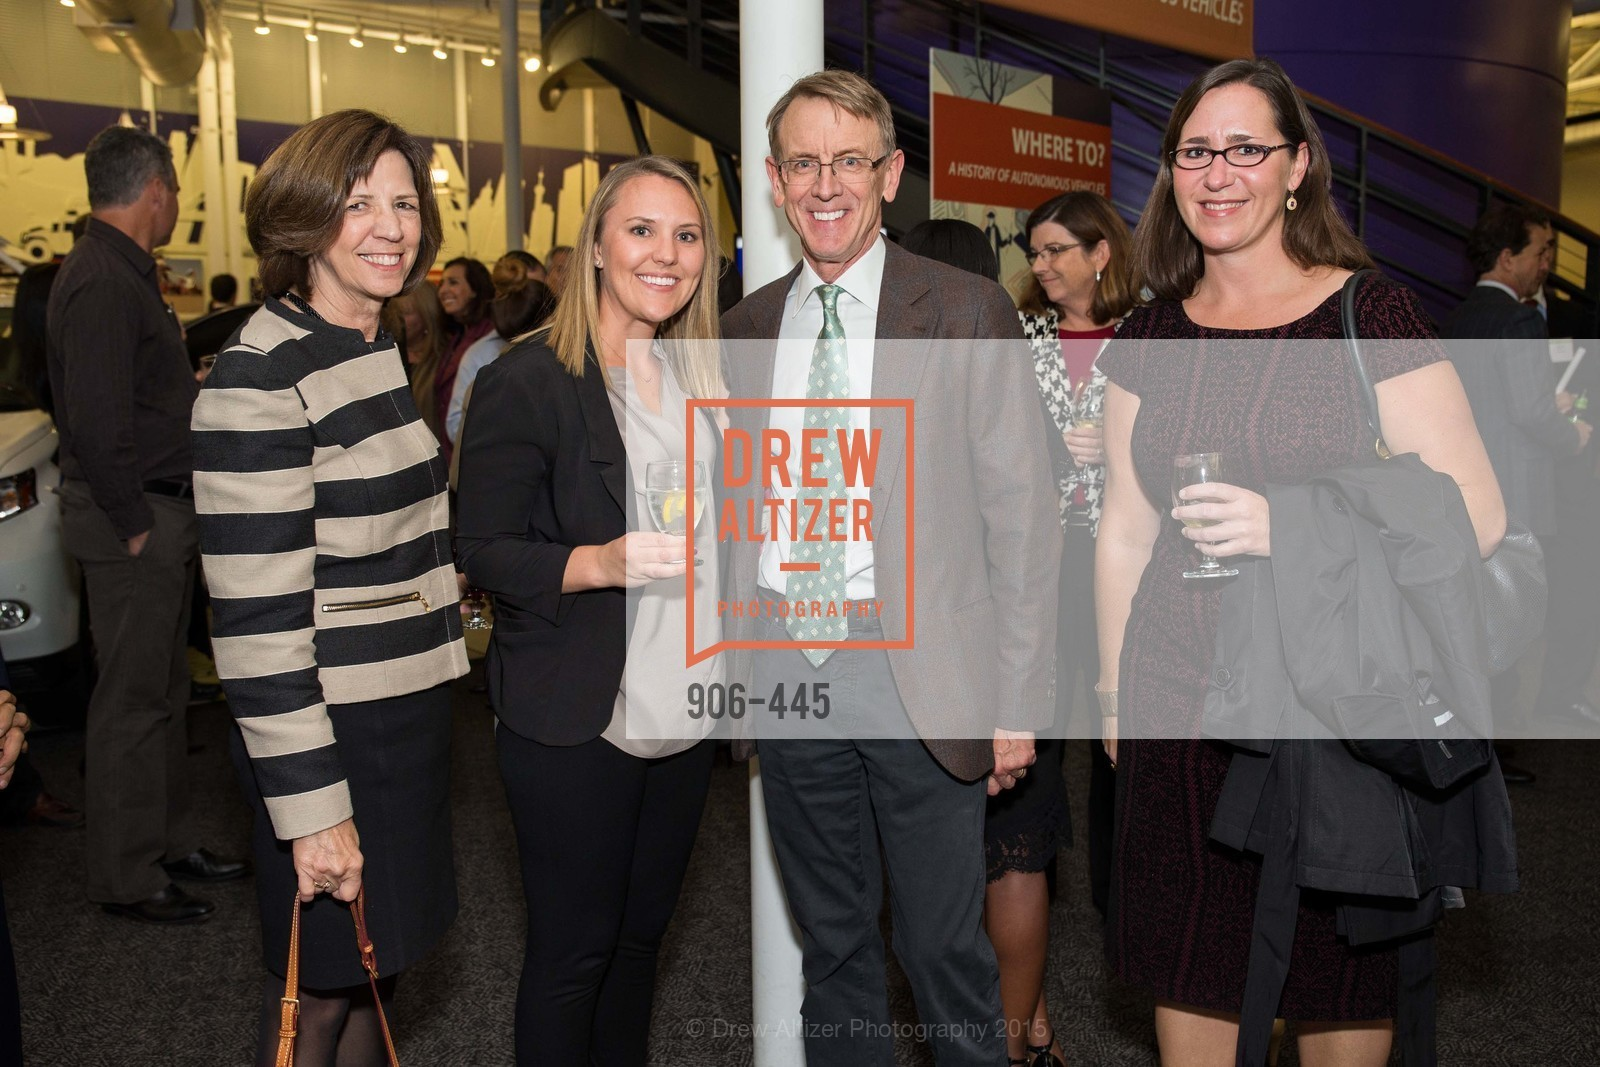 Elaine Curran, Julie Lata, John Doerr, Silicon Valley Education Foundation's PIONEERS & PURPOSE, Computer History Museum. 1401 N. Shoreline Blvd, November 4th, 2015,Drew Altizer, Drew Altizer Photography, full-service agency, private events, San Francisco photographer, photographer california